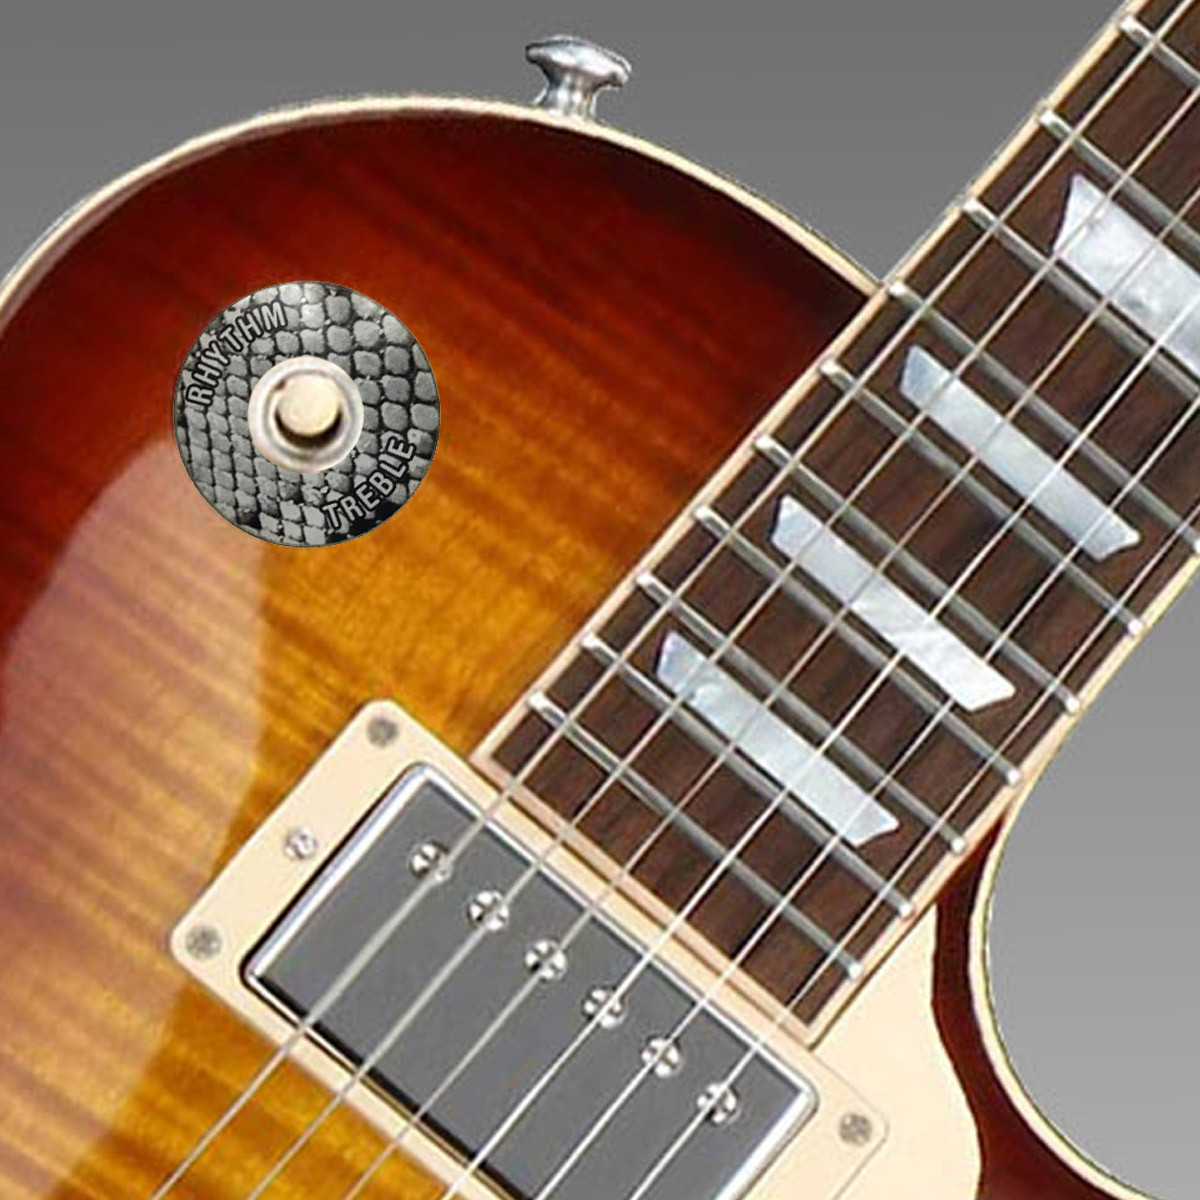 Gibson ®  Style Toggle Switch Trim Ring - White Snake skin